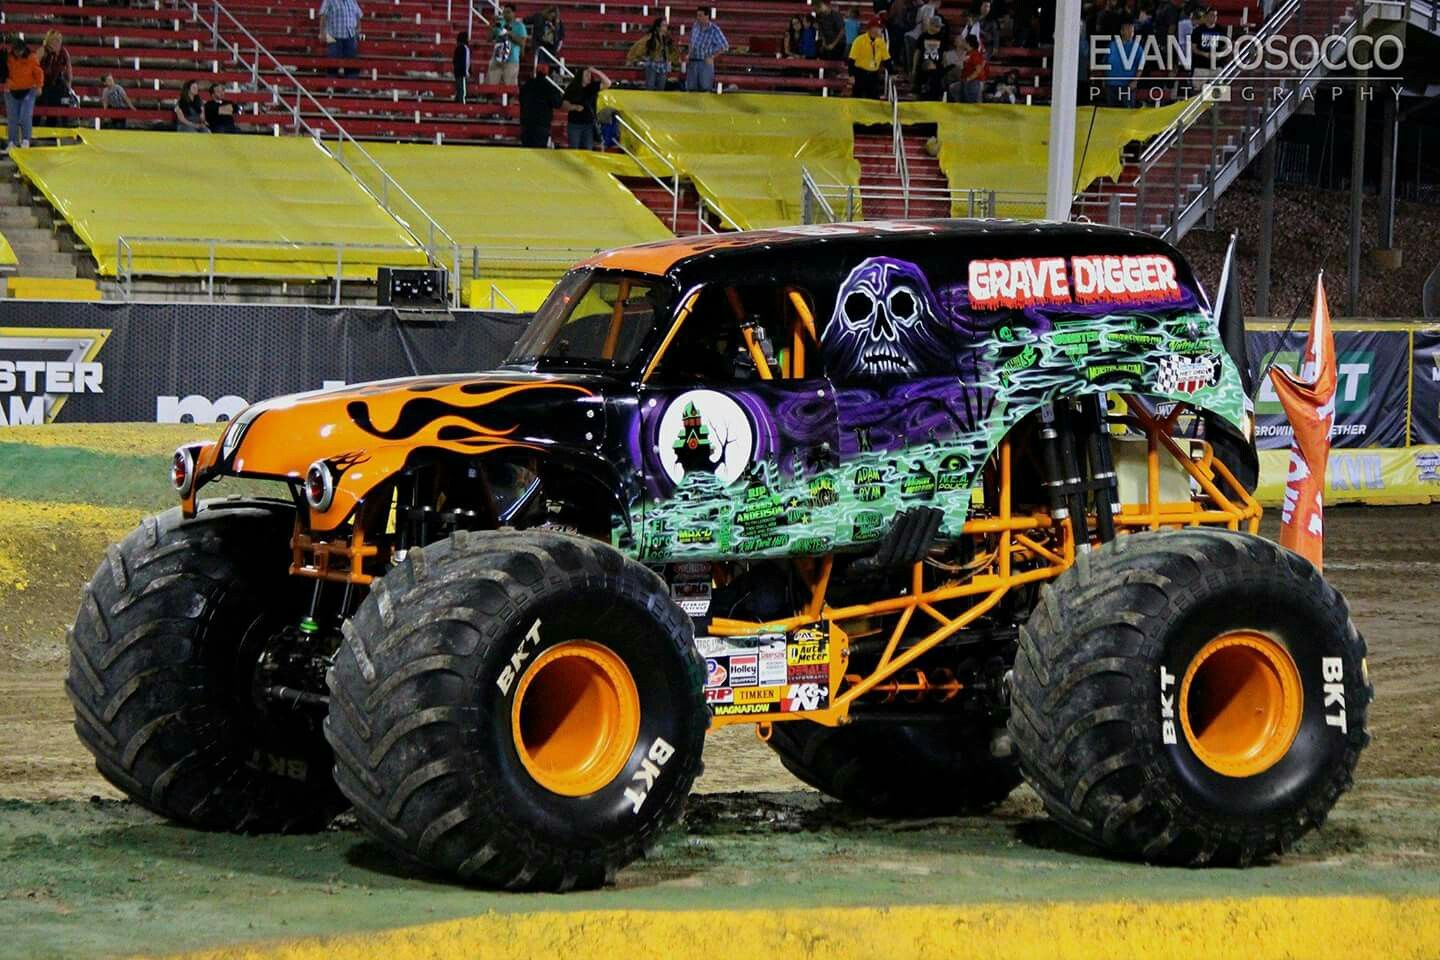 Hot Rod Monster Truck Hot Rod